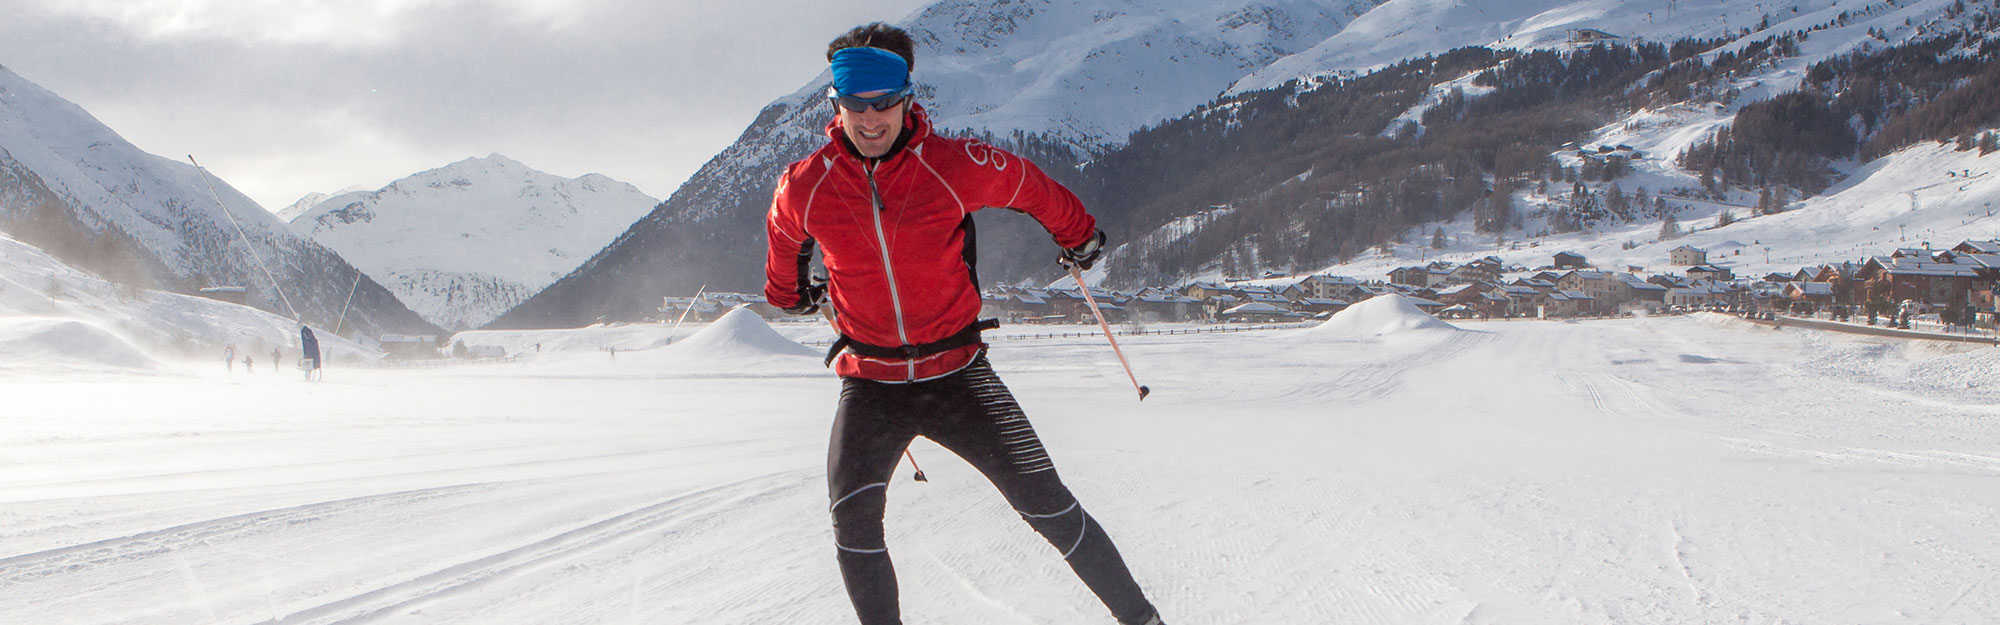 Man cross country skiing.